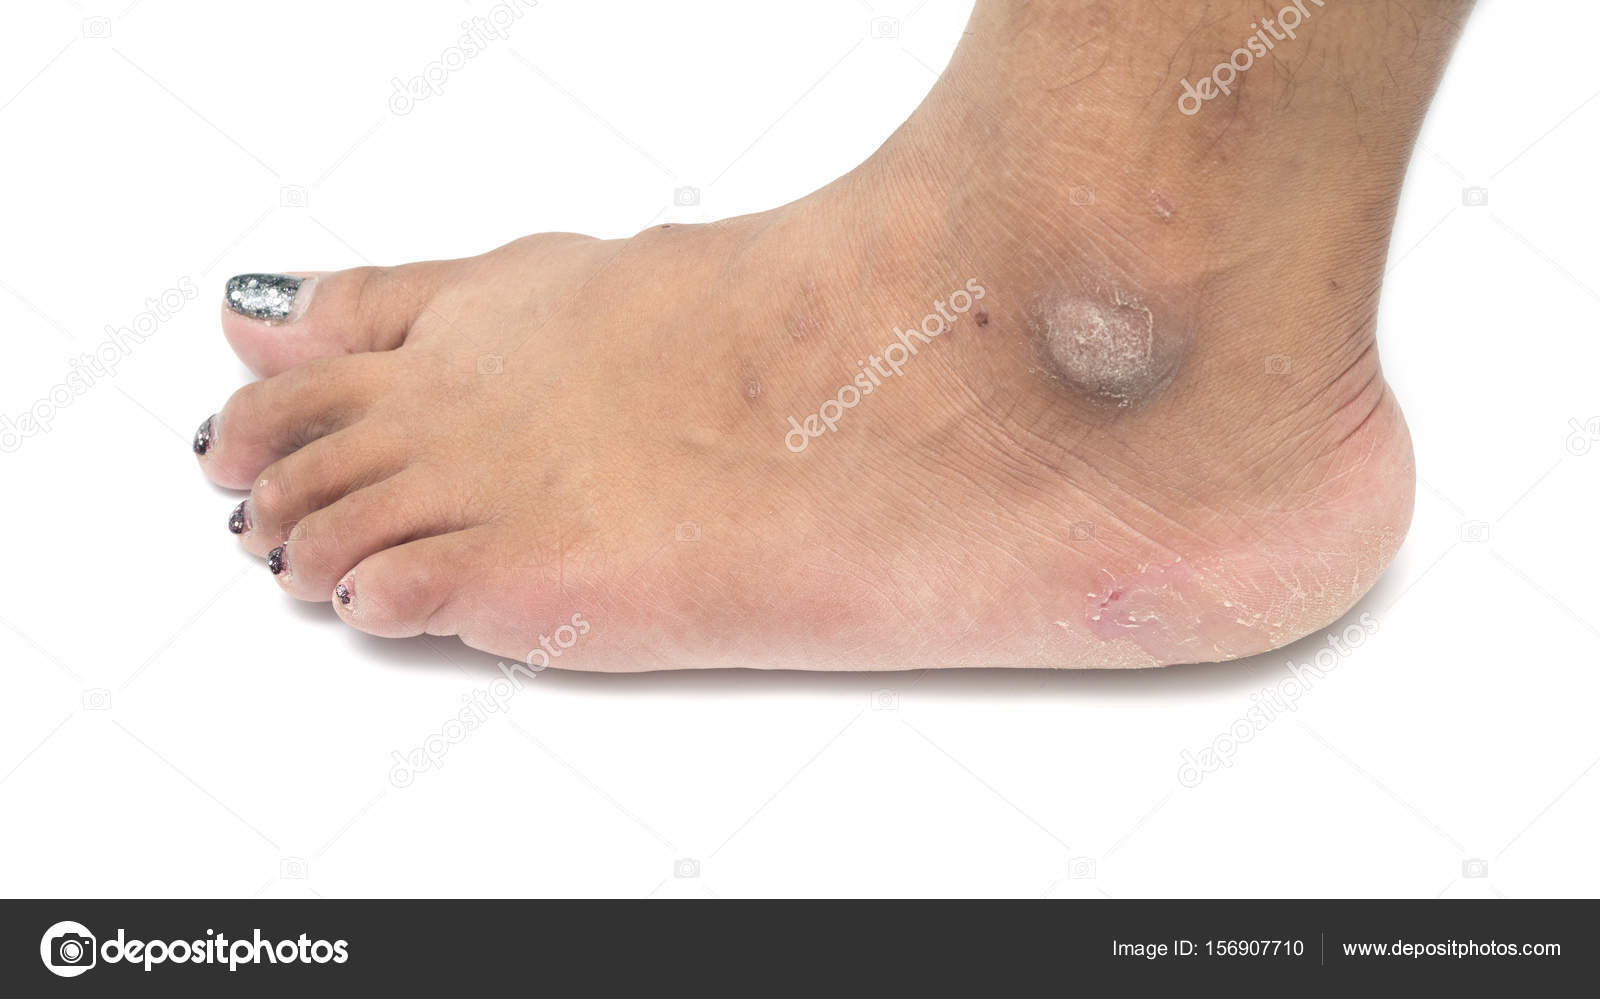 dry skin on ankle